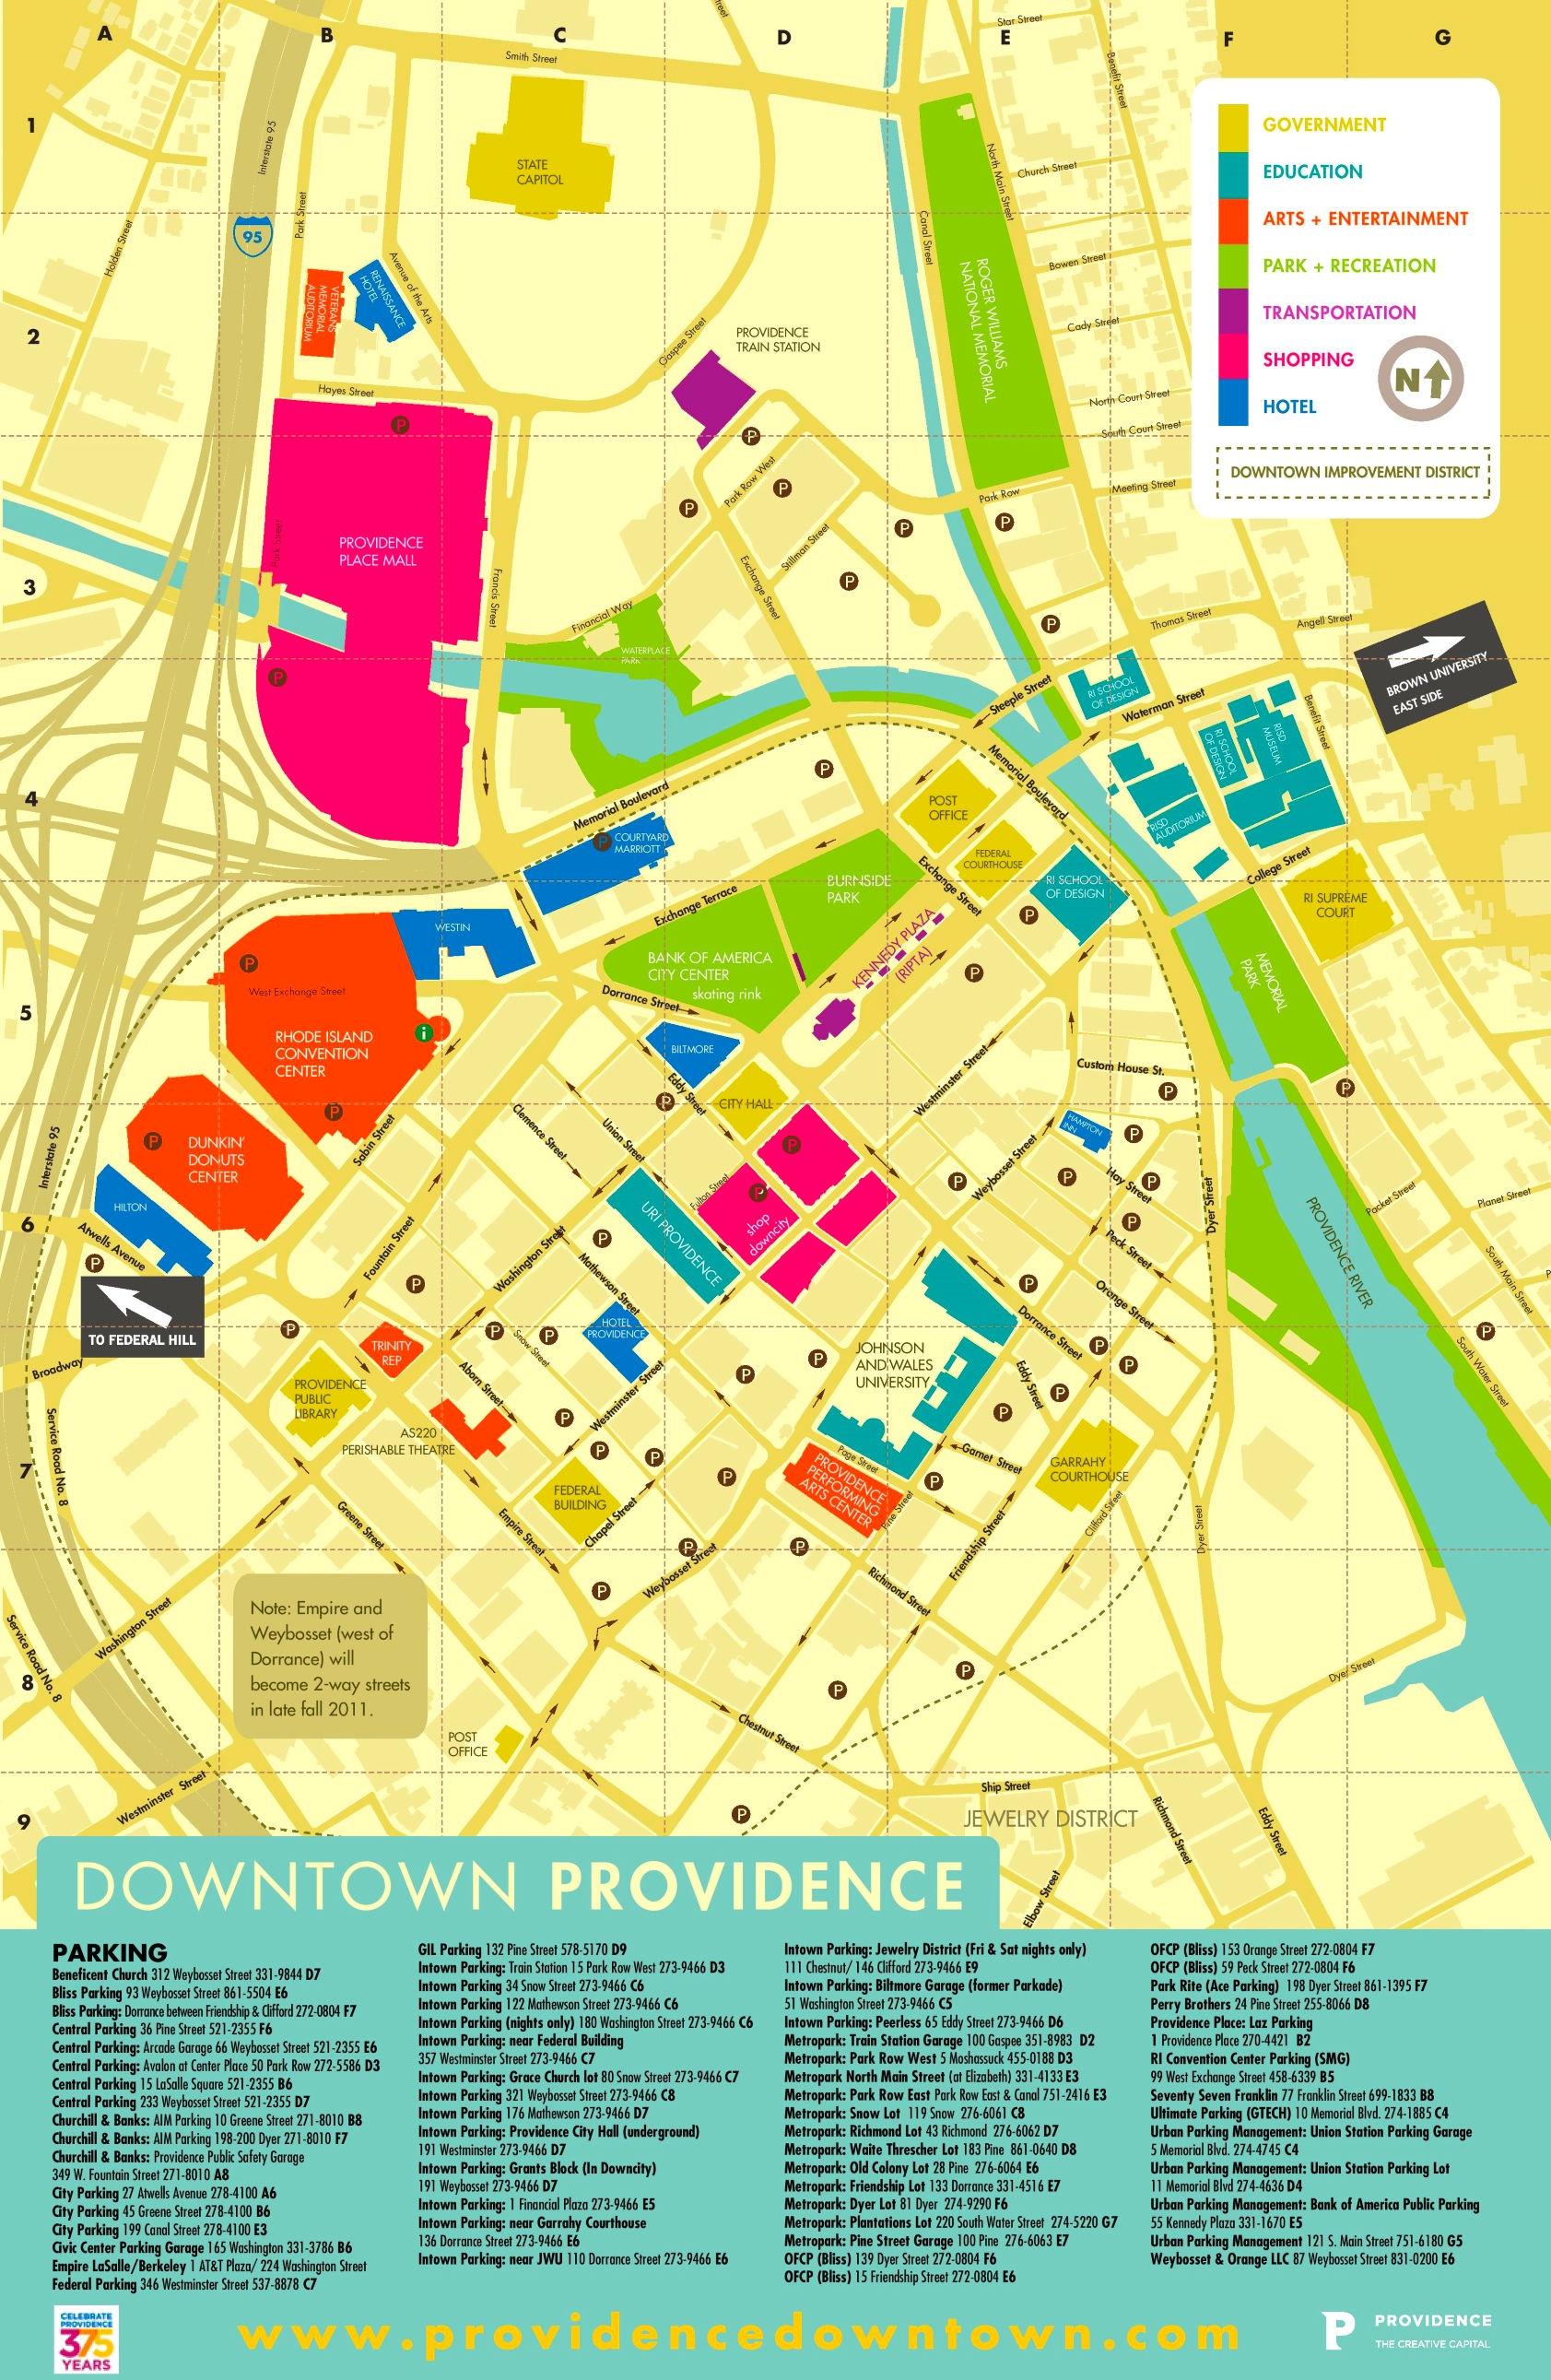 Providence tourist map